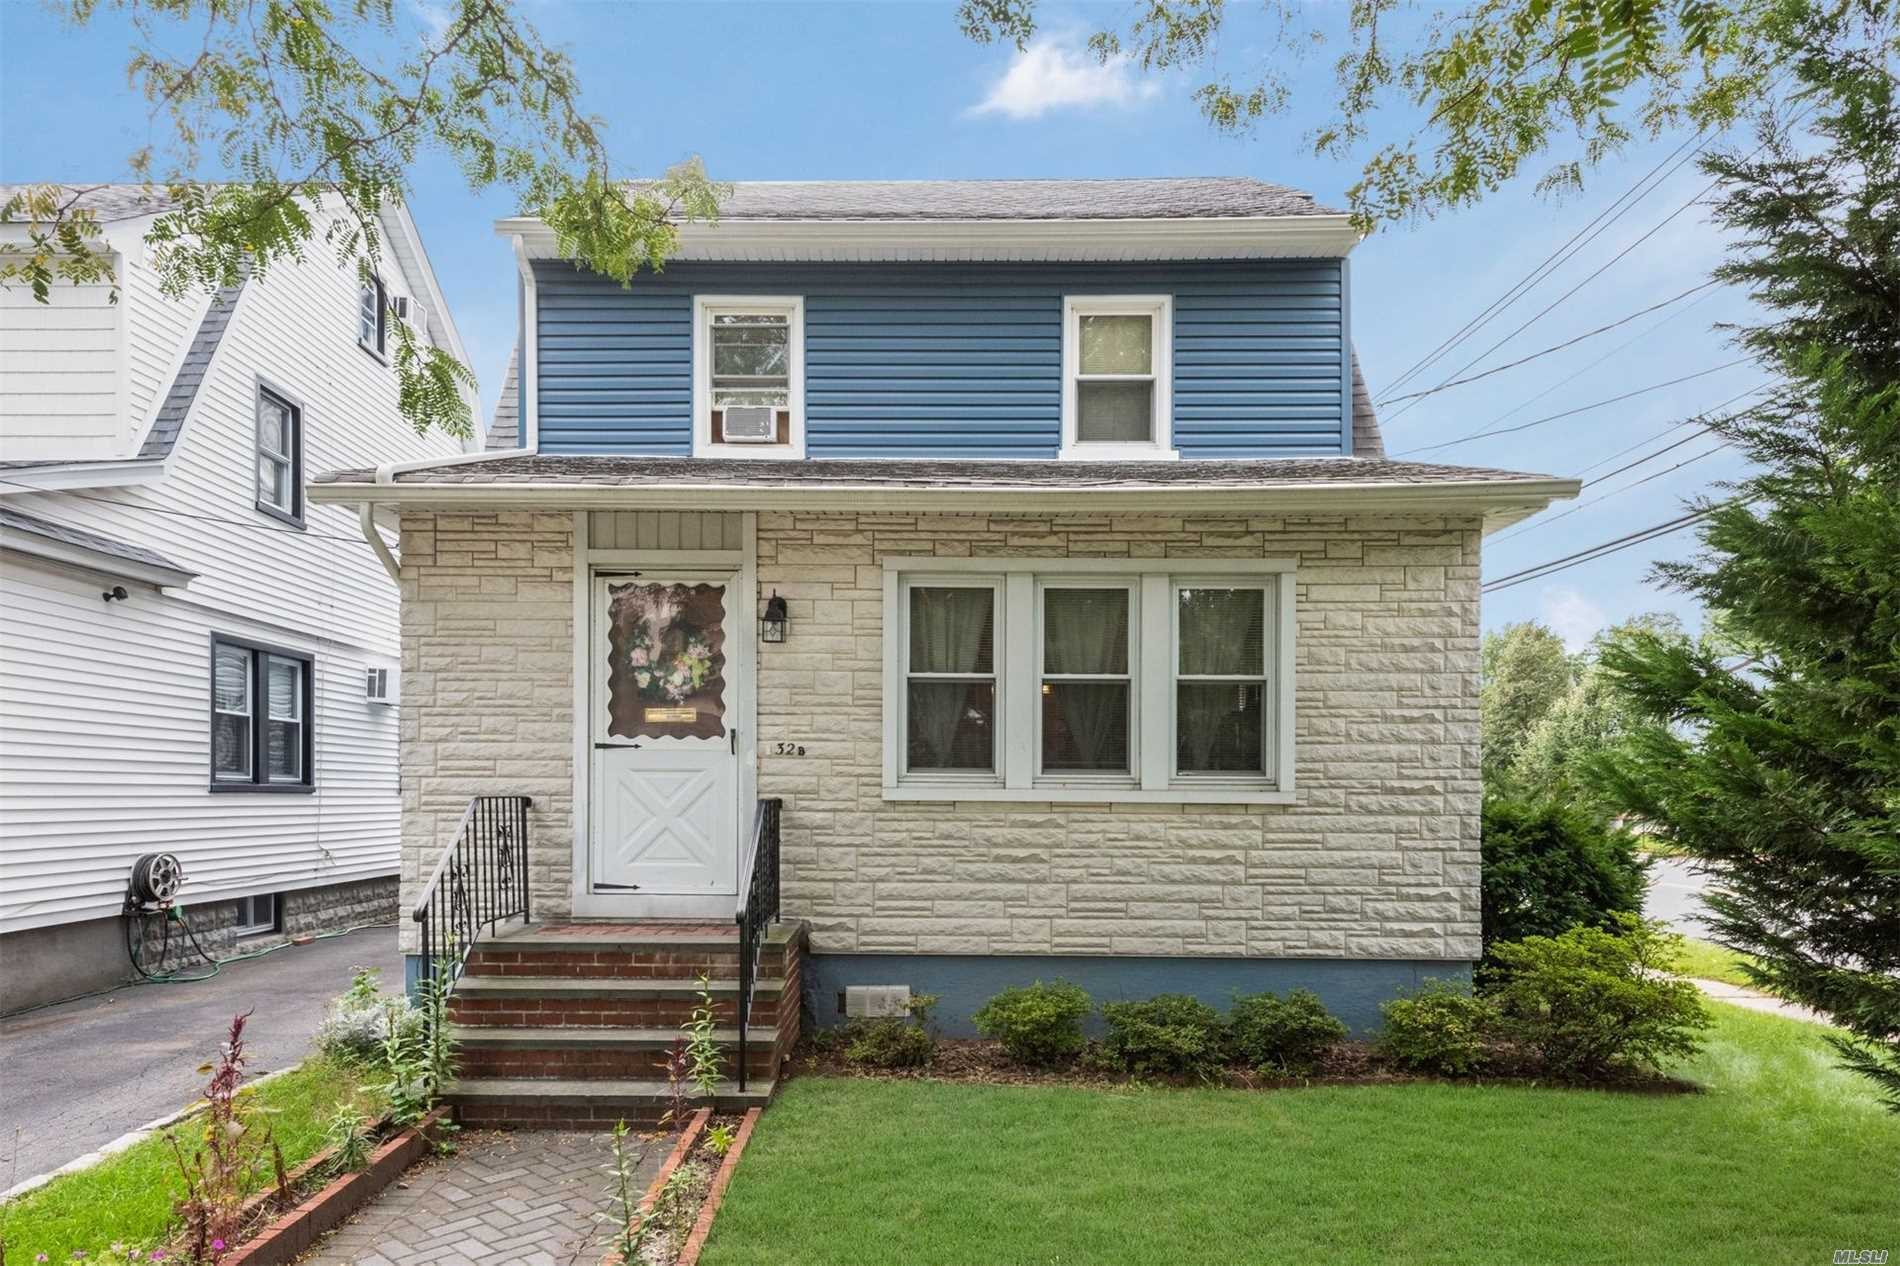 Photo of home for sale at 32B Emerson Ave, Floral Park NY